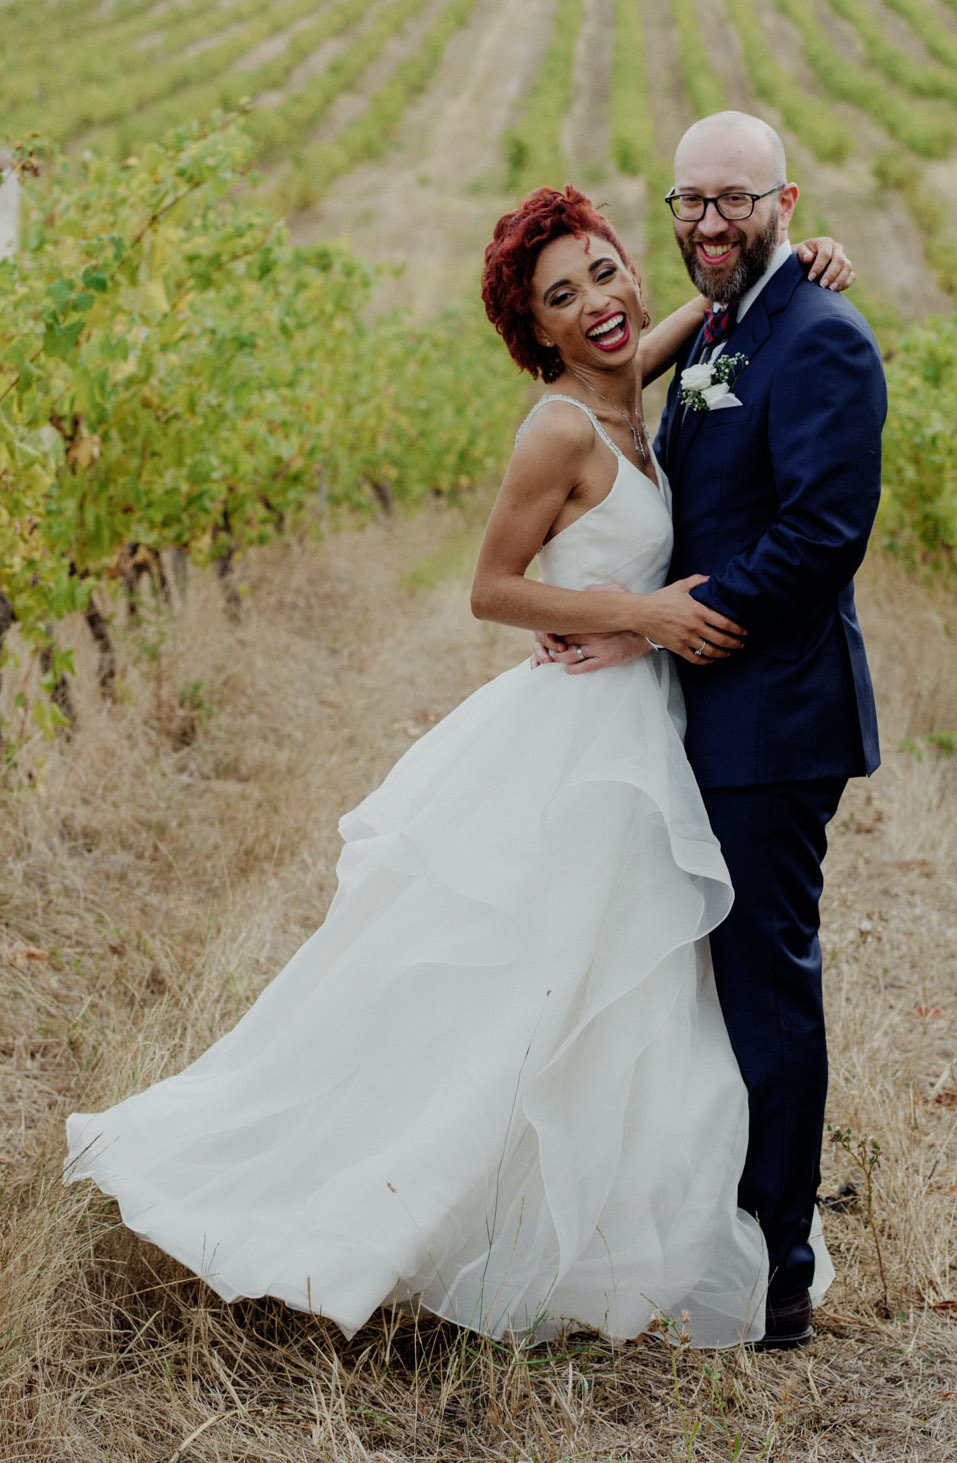 Anomalie Online Custom Wedding Dresses can create your dream dress with tiers, ruffles, tulle, and lace.